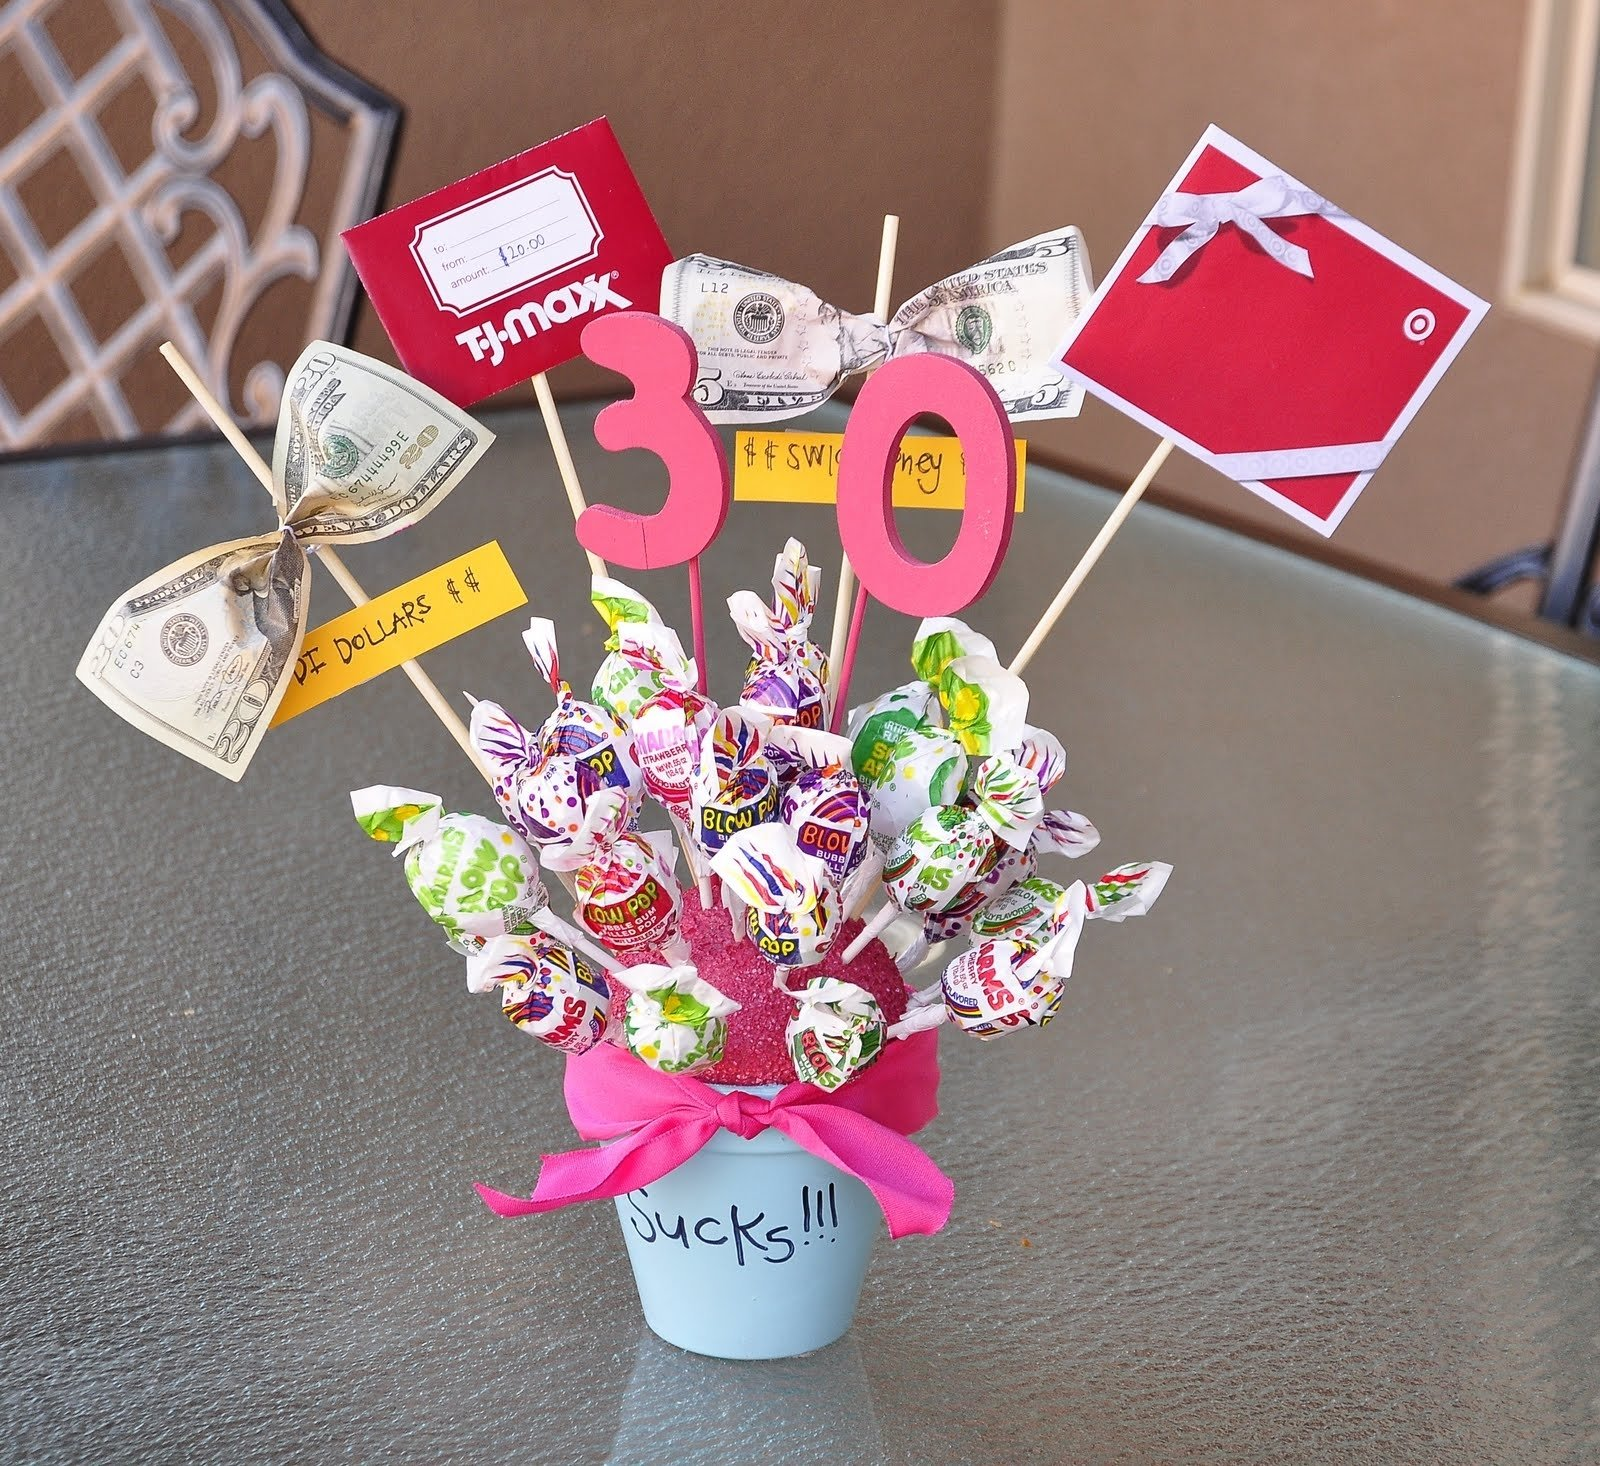 10 Amazing Creative Birthday Ideas For Husband 30th birthday party 30th birthdays and gift